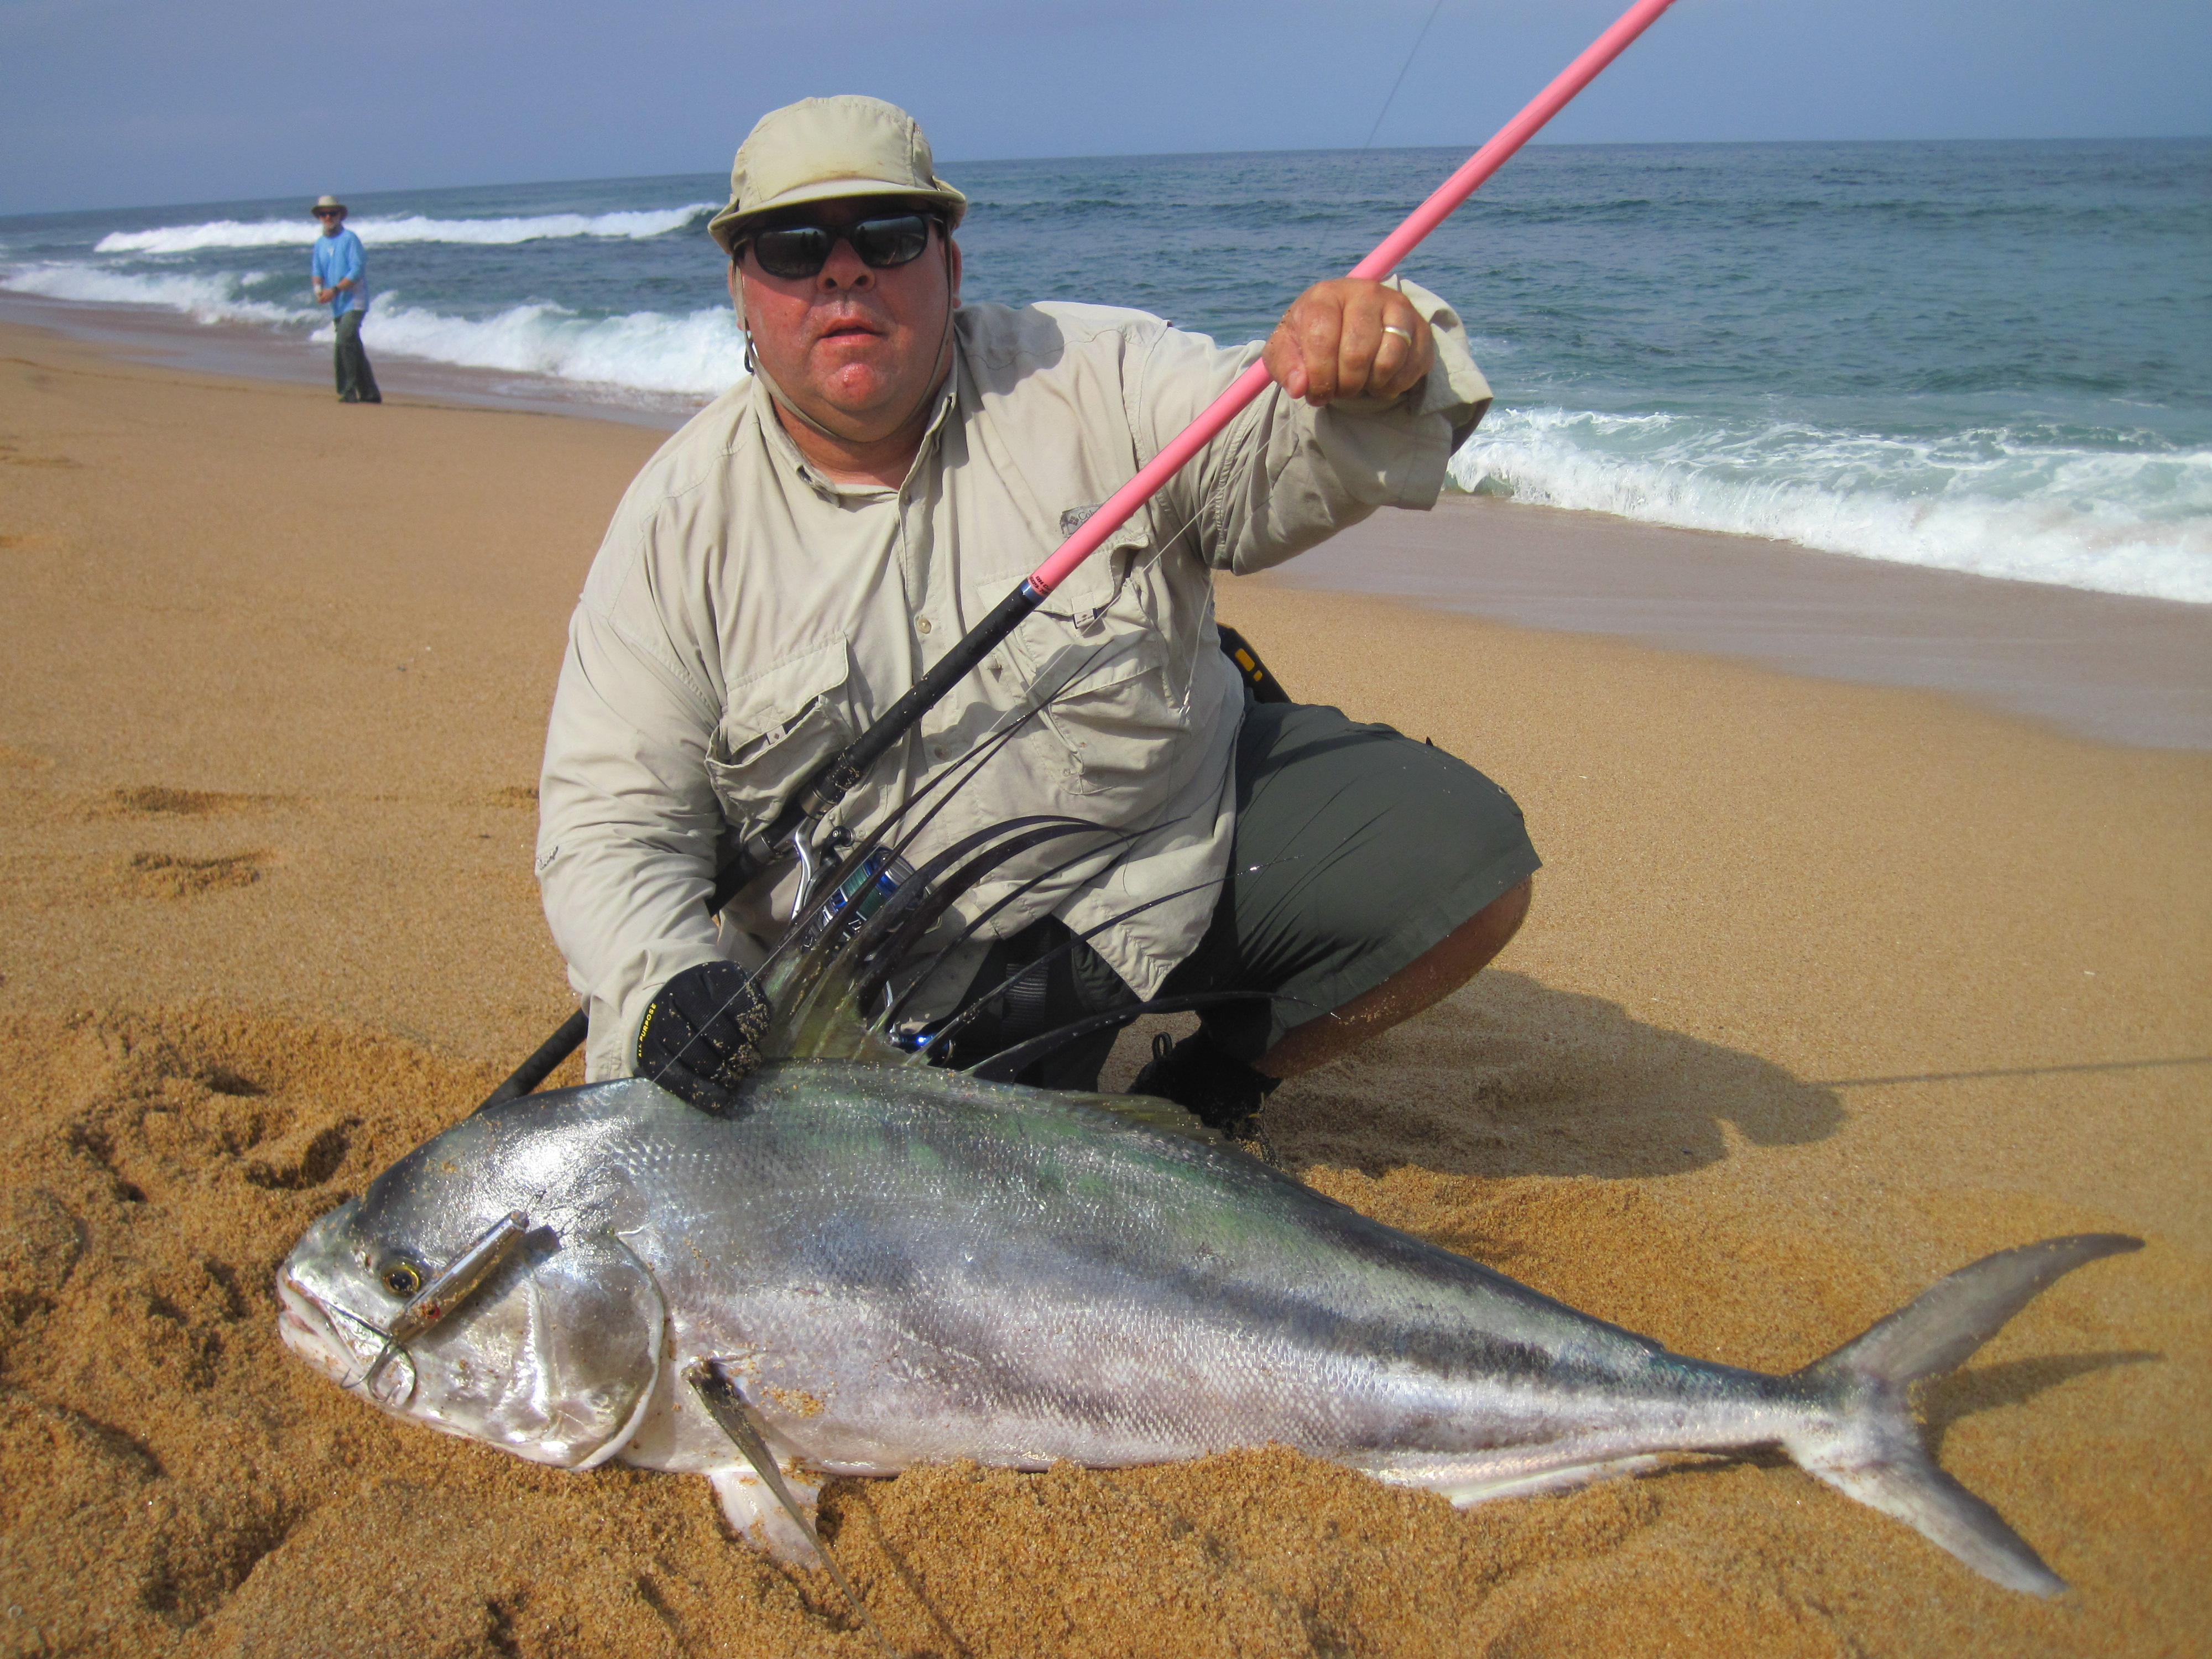 Lures For Roosterfish - Main Forum